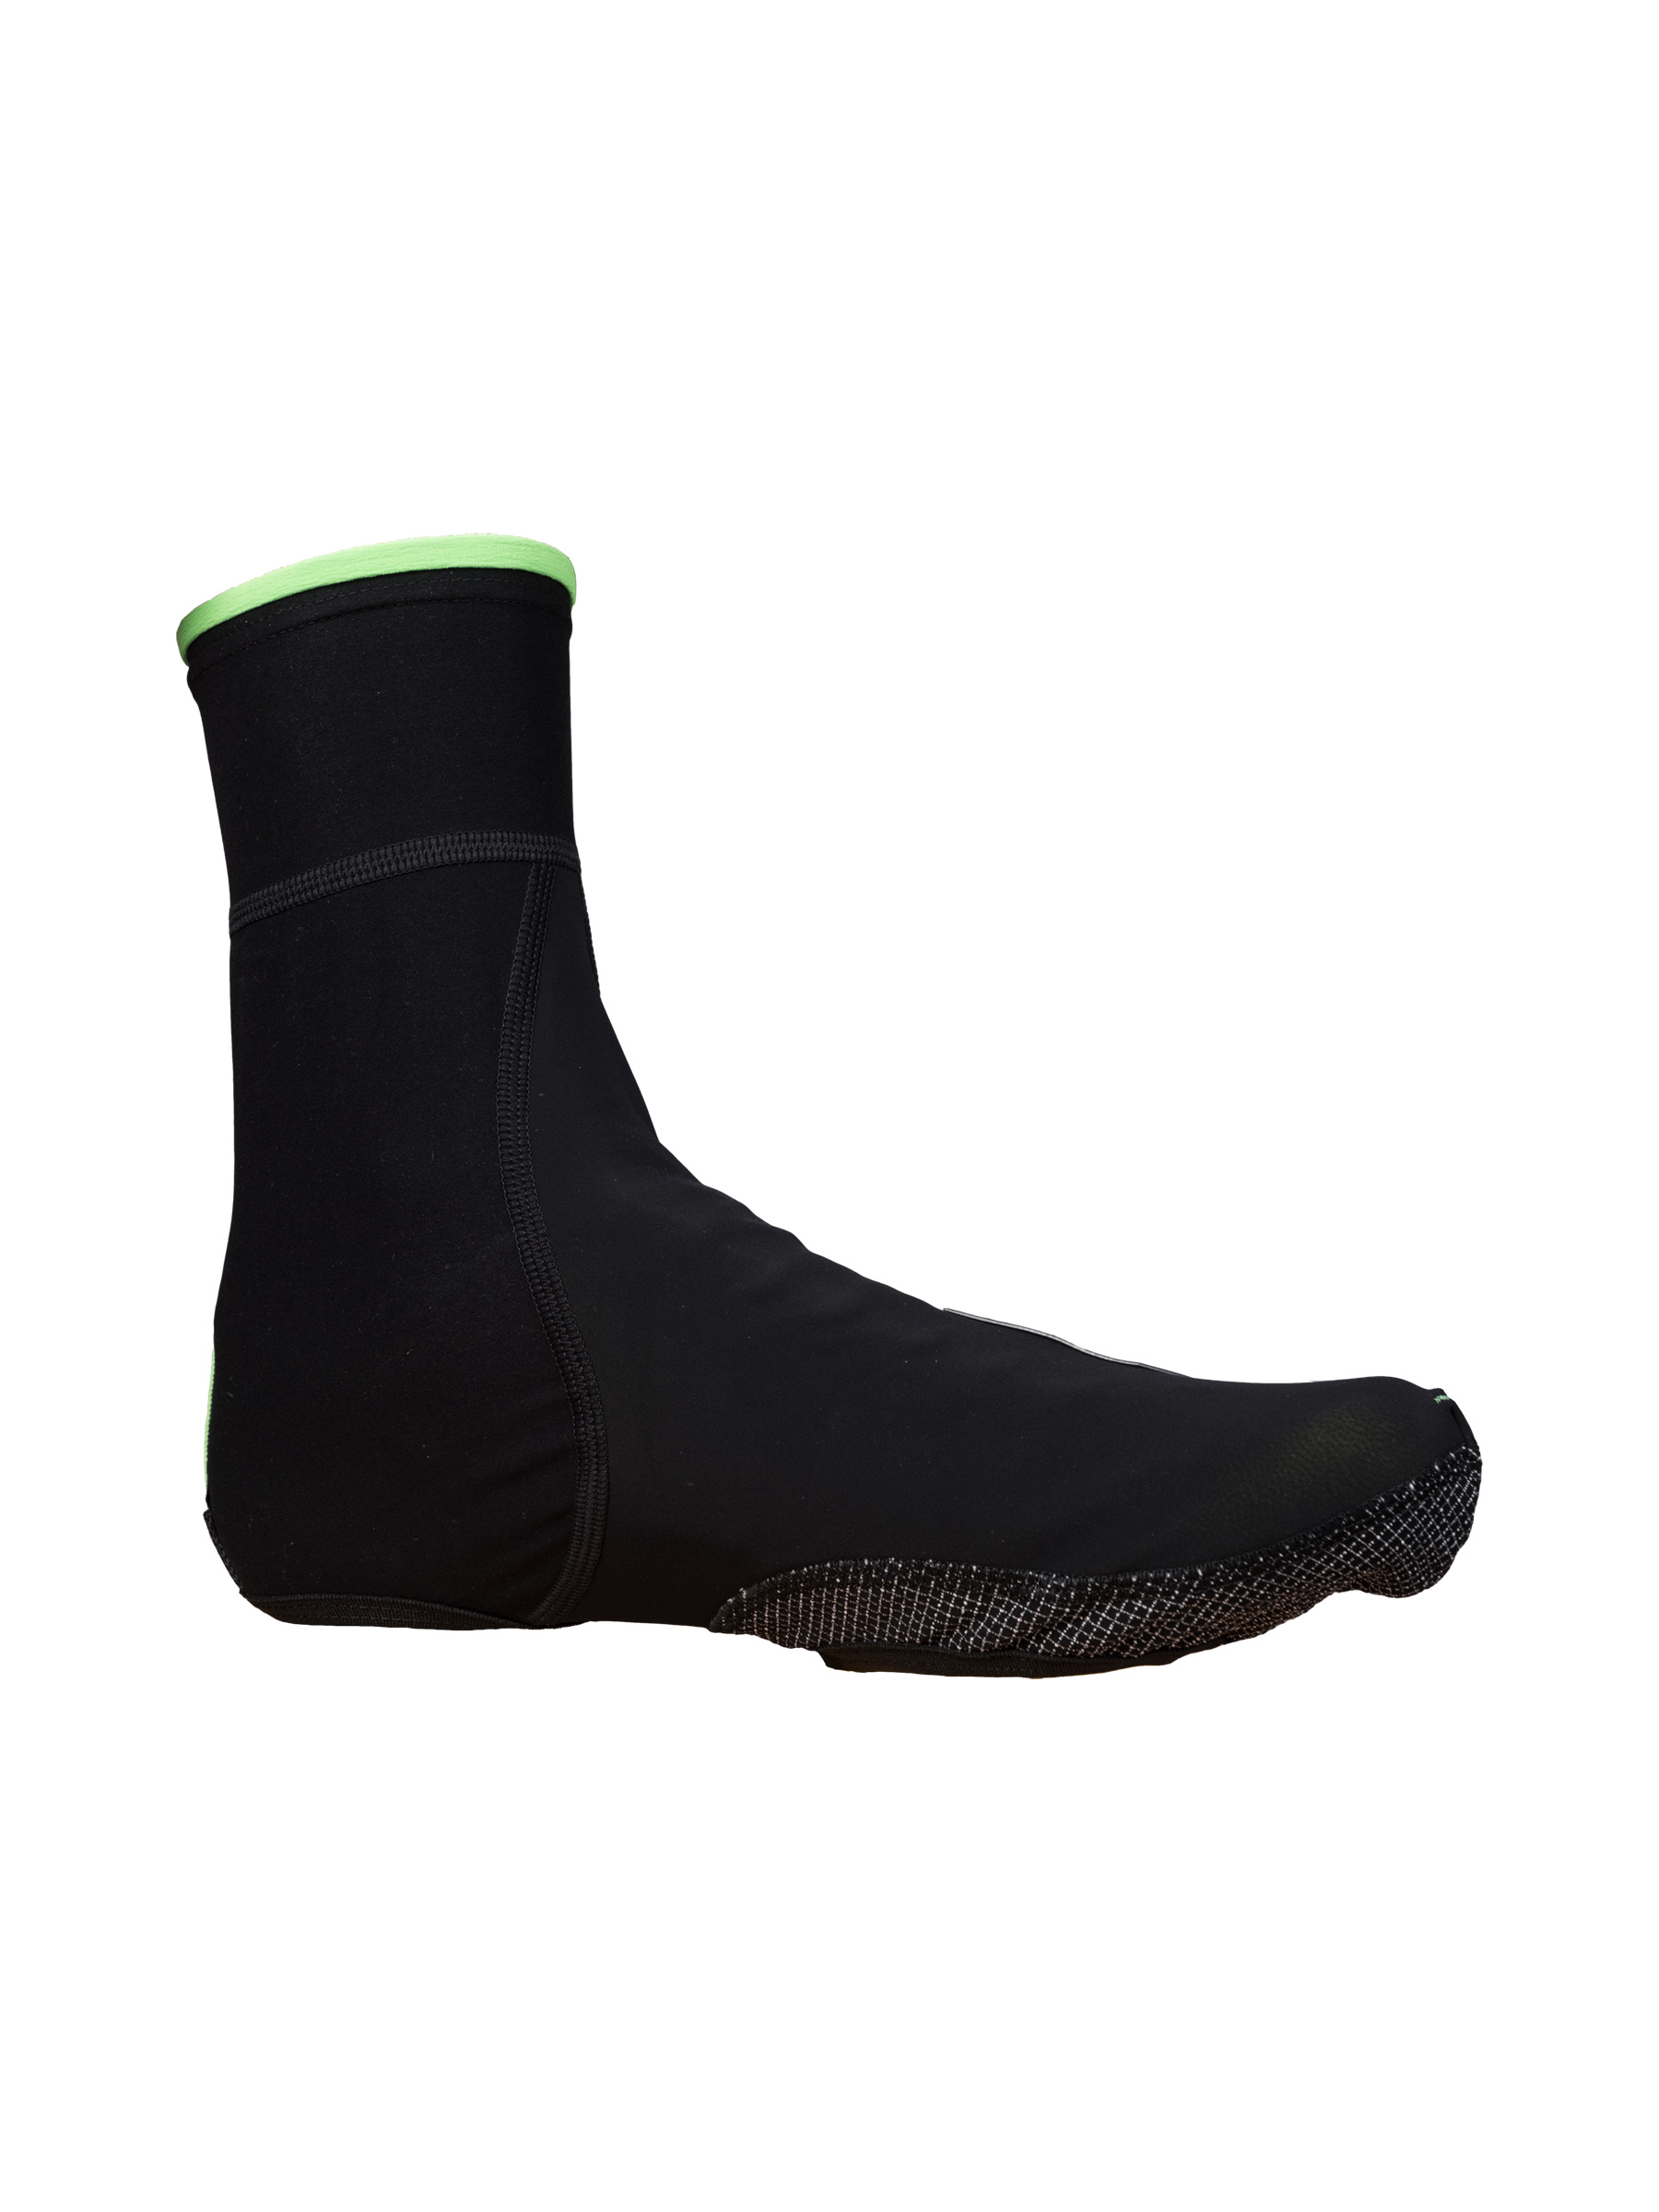 Termico Overshoes Black